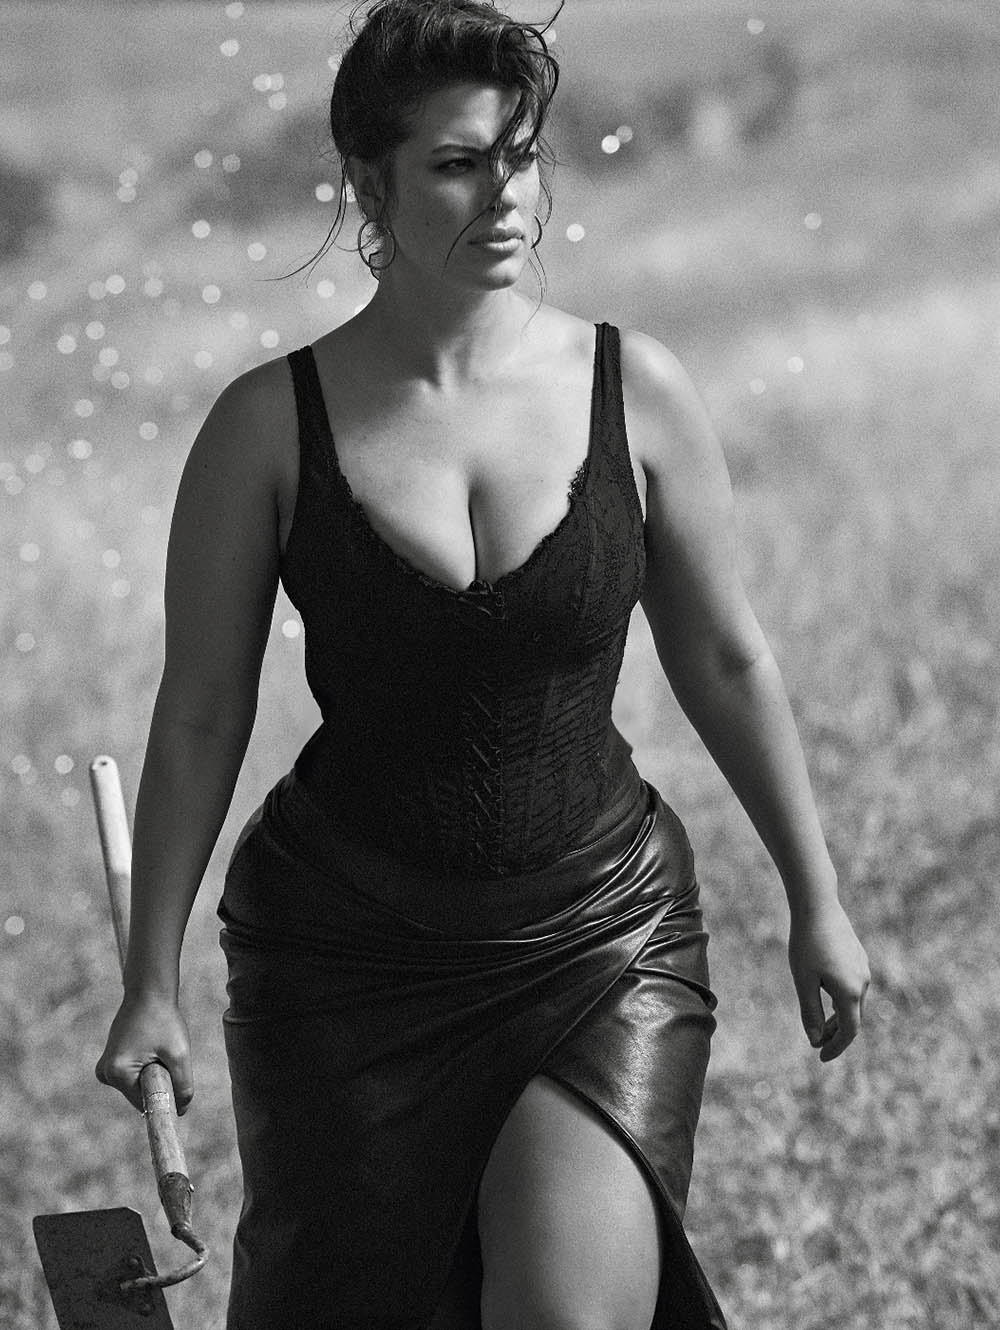 Ashley-Graham-by-Lachlan-Bailey-for-Vogue-Paris-November-2018-1.jpg